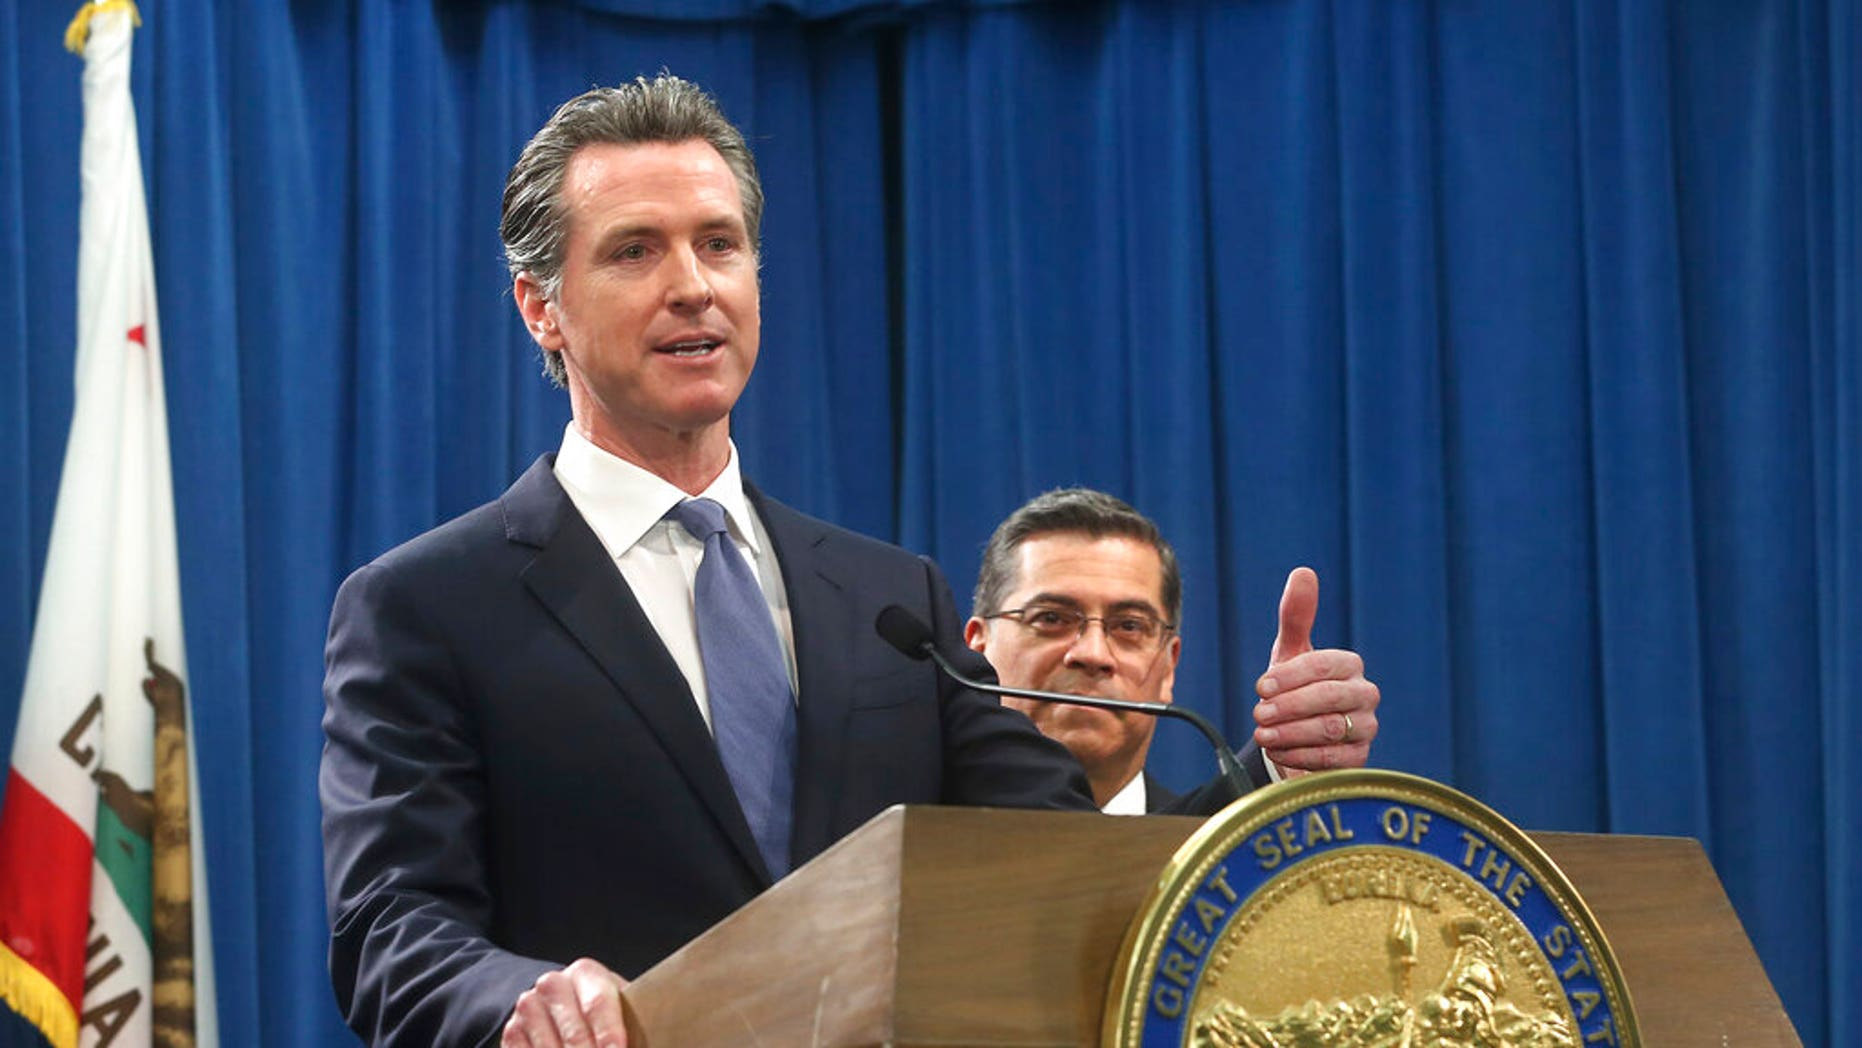 California Gov. Gavin Newsom, left, flanked by Attorney General Xavier Becerra, right, answers a doubt concerning a lawsuit a state will expected record opposite President Donald Trump over his puncture stipulation to account a wall on a U.S.-Mexico limit Friday, Feb. 15, 2019, in Sacramento, Calif. Newsom and Becerra both contend there is no puncture during a limit and Trump doesn't have a management to make a declaration. (AP Photo/Rich Pedroncelli)